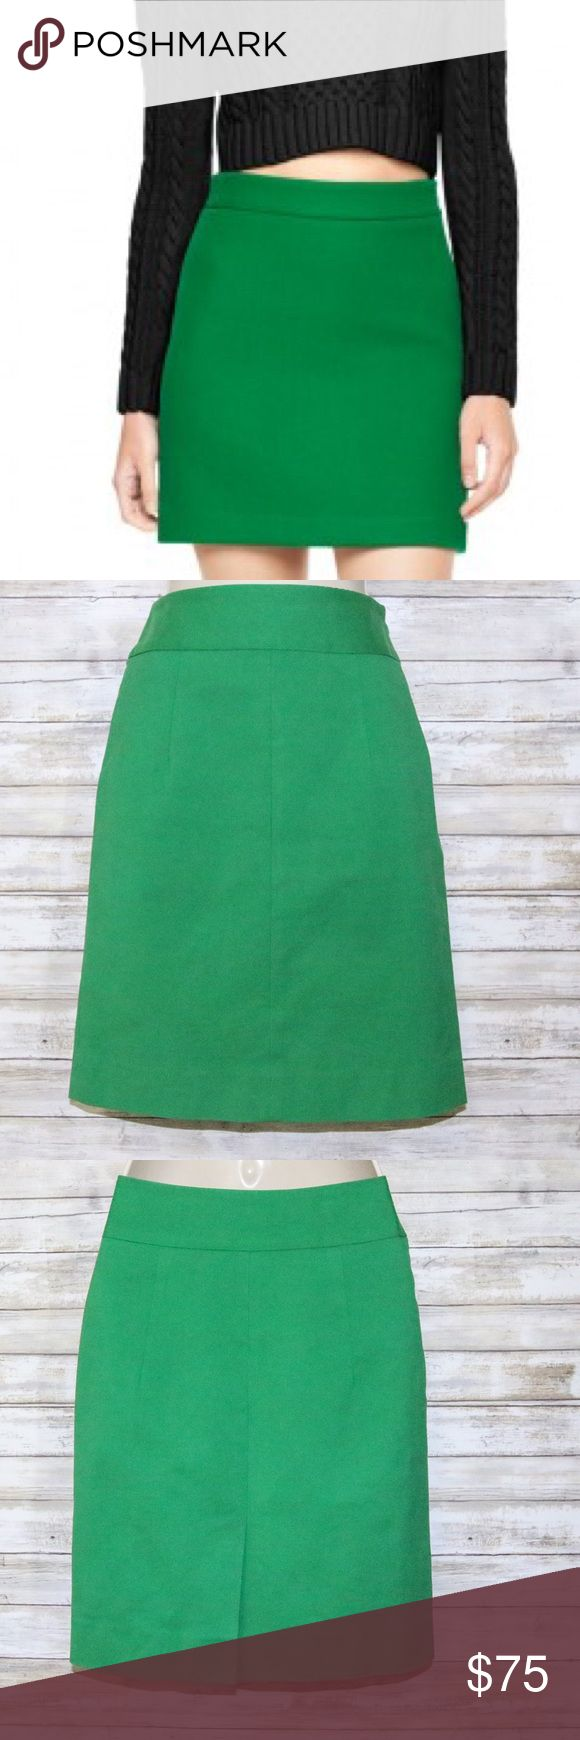 MILLY kelly green pencil skirt sz 2 MILLY kelly green pencil skirt  sz 2  Gently Worn Milly Skirts